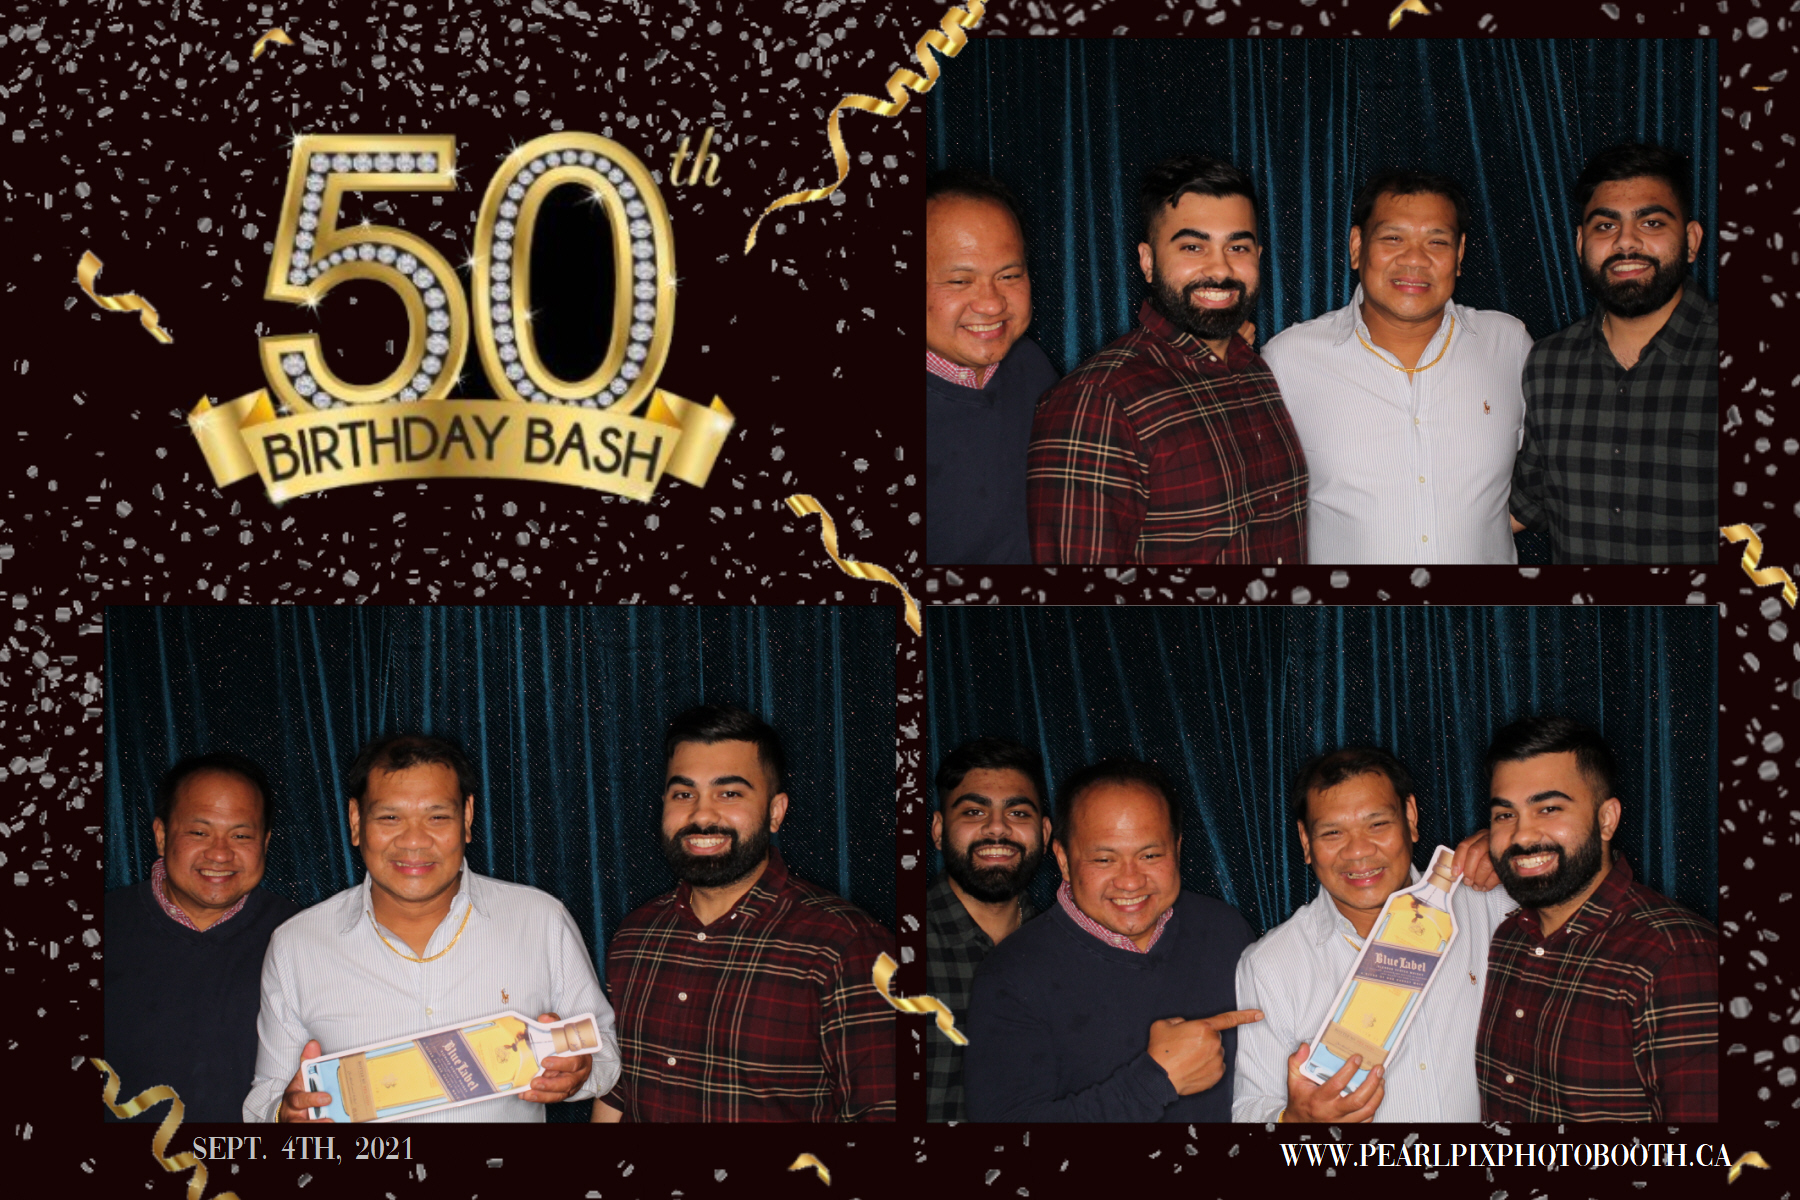 Peter_s 50th Bday_17